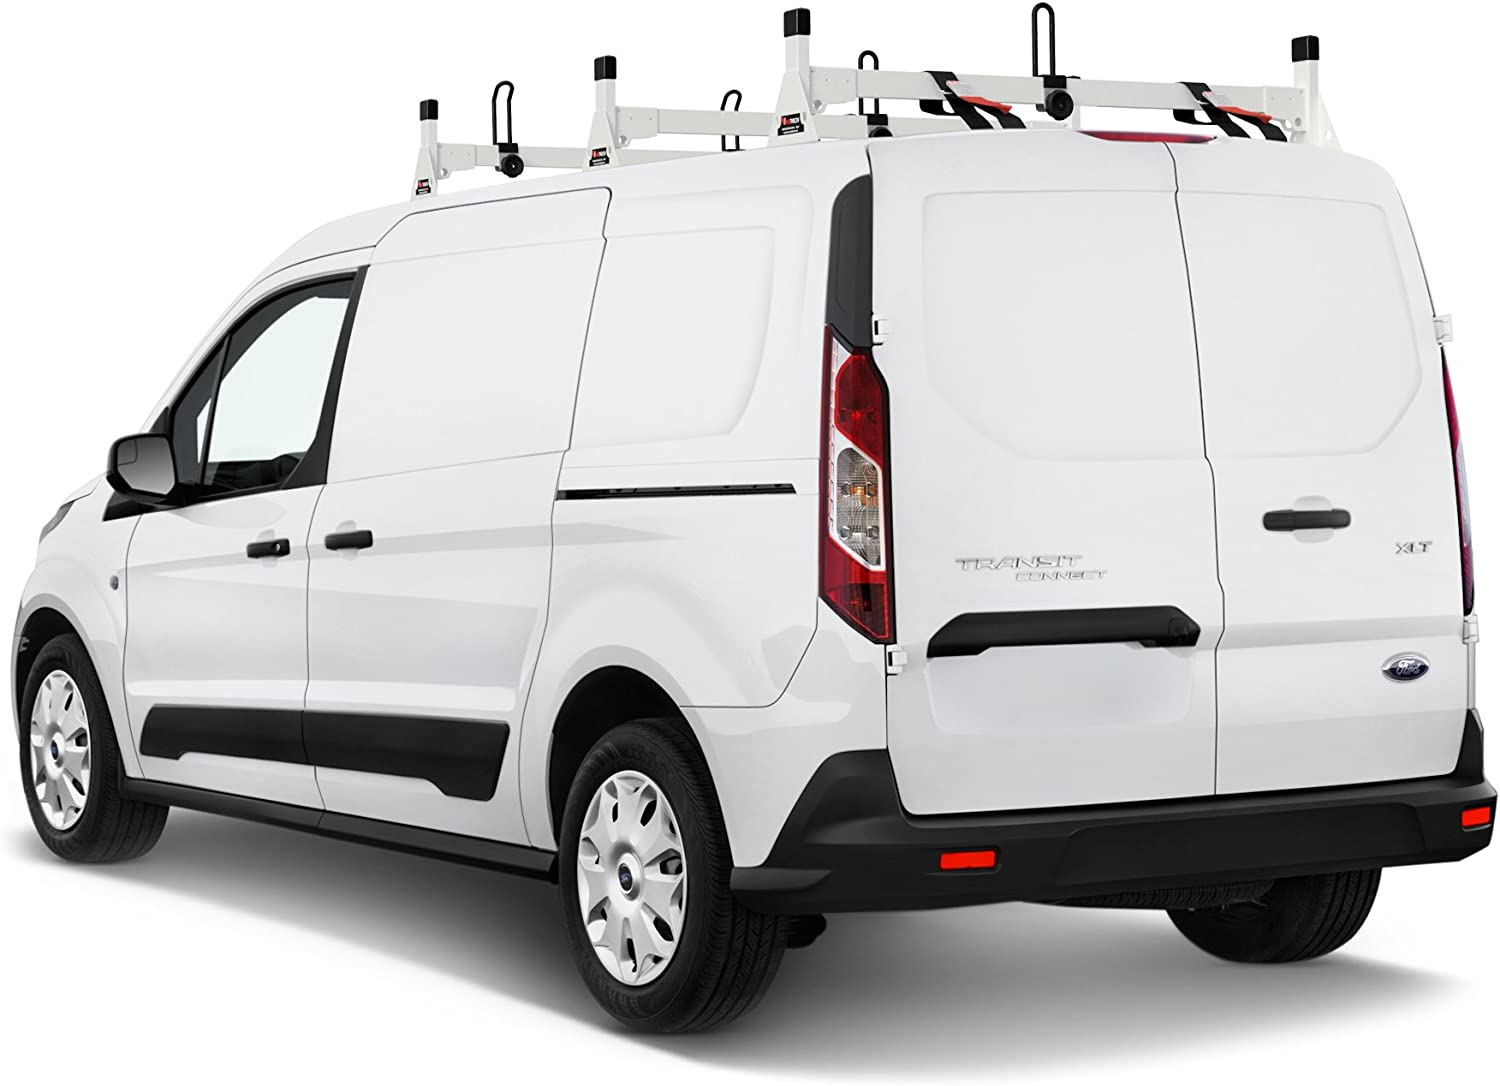 Steel H1 Low Profile 2 Bar Ladder Roof Rack for a Transit Connect 2014-Newer Black